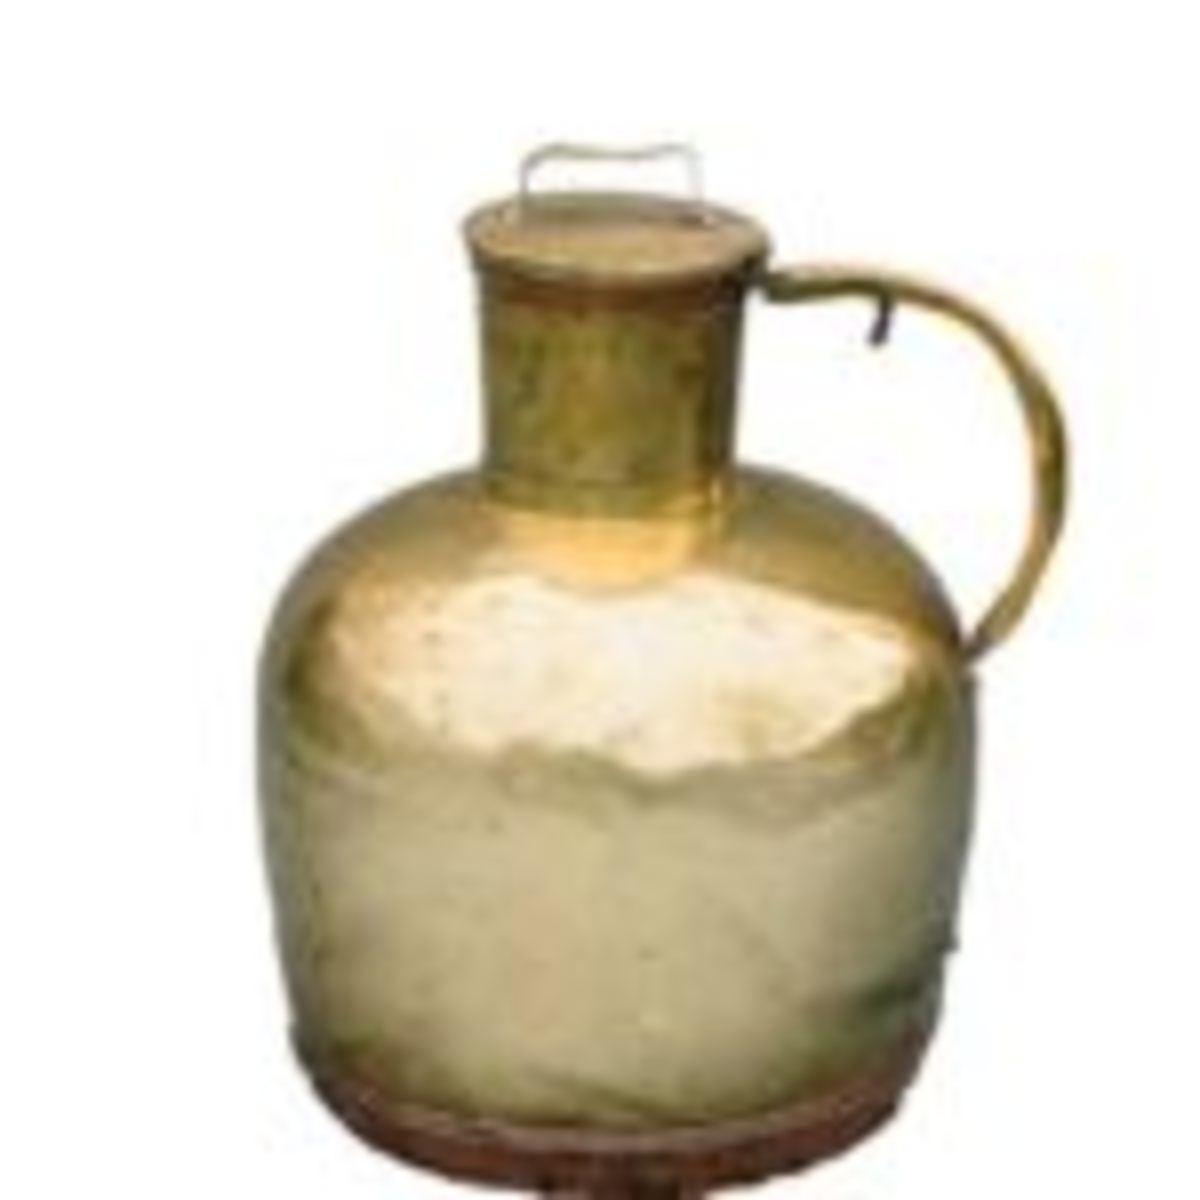 This is a rare example of a four gallon brass milk can that dates back to the early 1800s or possibly the late 18thcentury. The shape is typical of early western Europe.